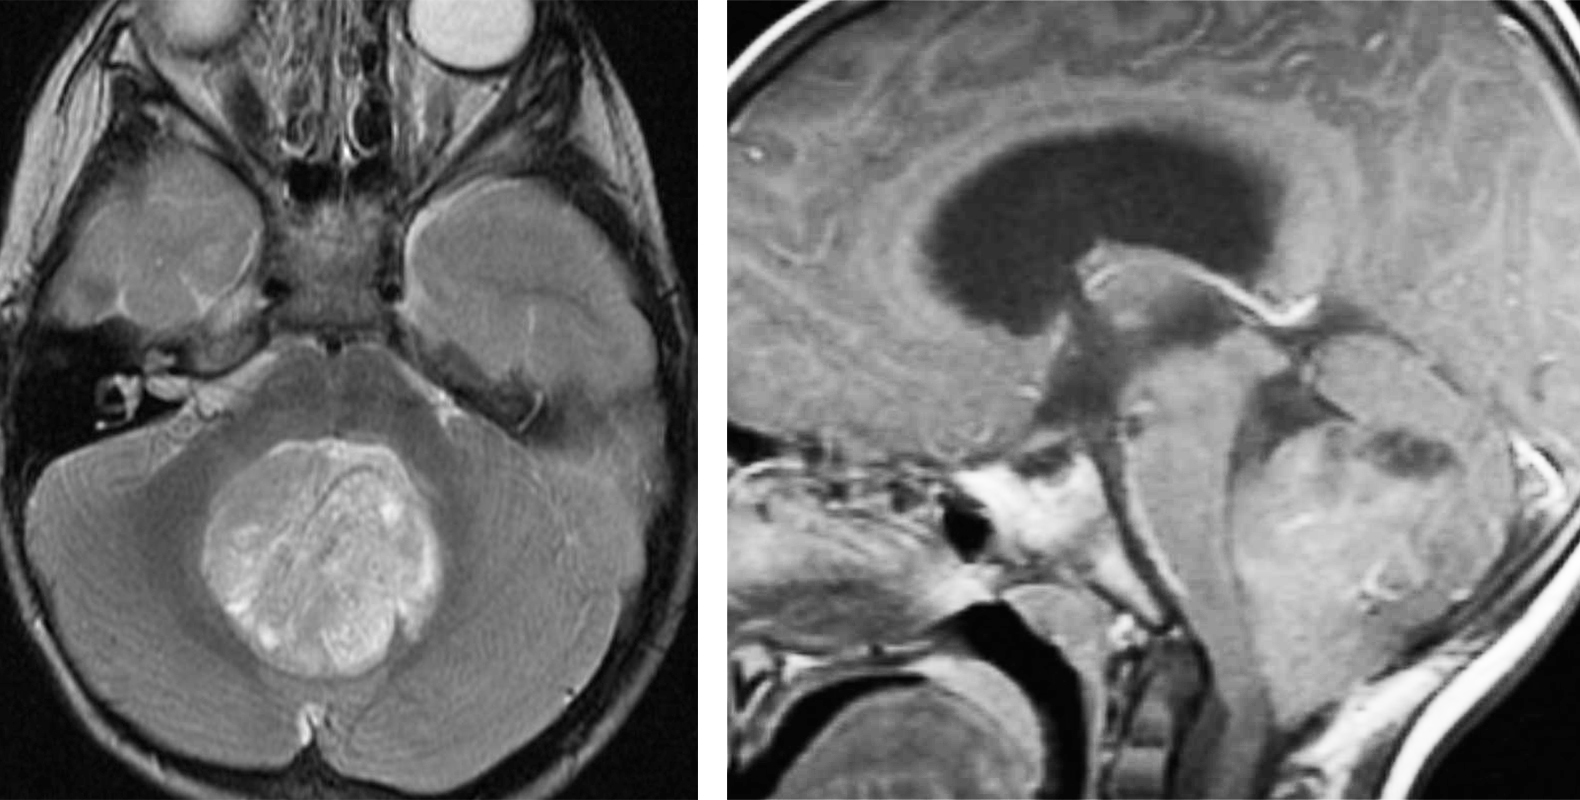 Figure 5: Medulloblastomas are hypointense to grey matter on T1 and often heterogeneously enhance. On T2 sequences, they also appear heterogeneous due to calcification, necrosis and cyst formation.